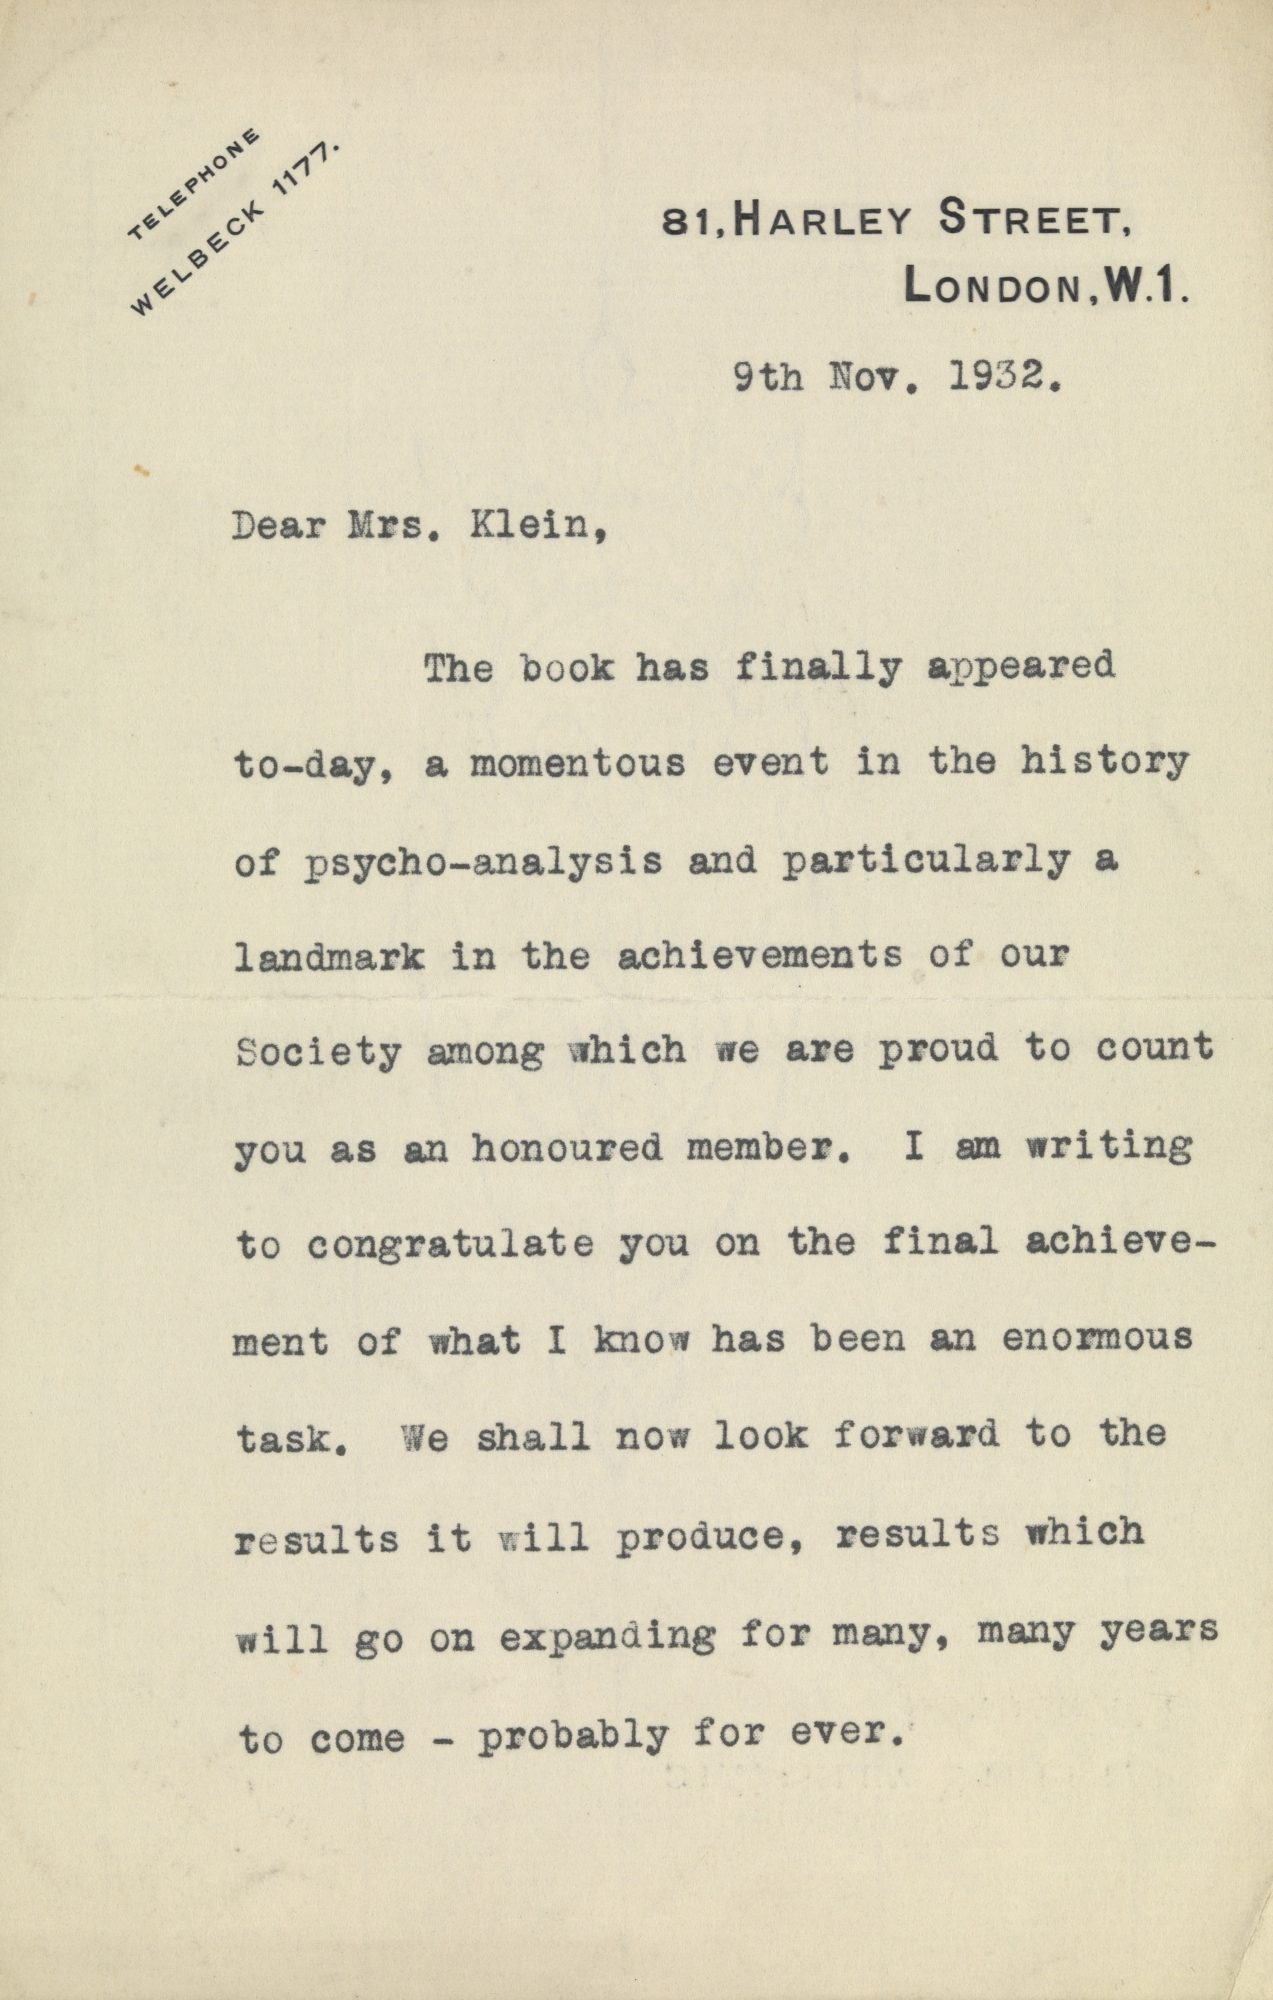 Letter from Ernest Jones to Klein (1932) on the publication of The Psychoanalysis of Children